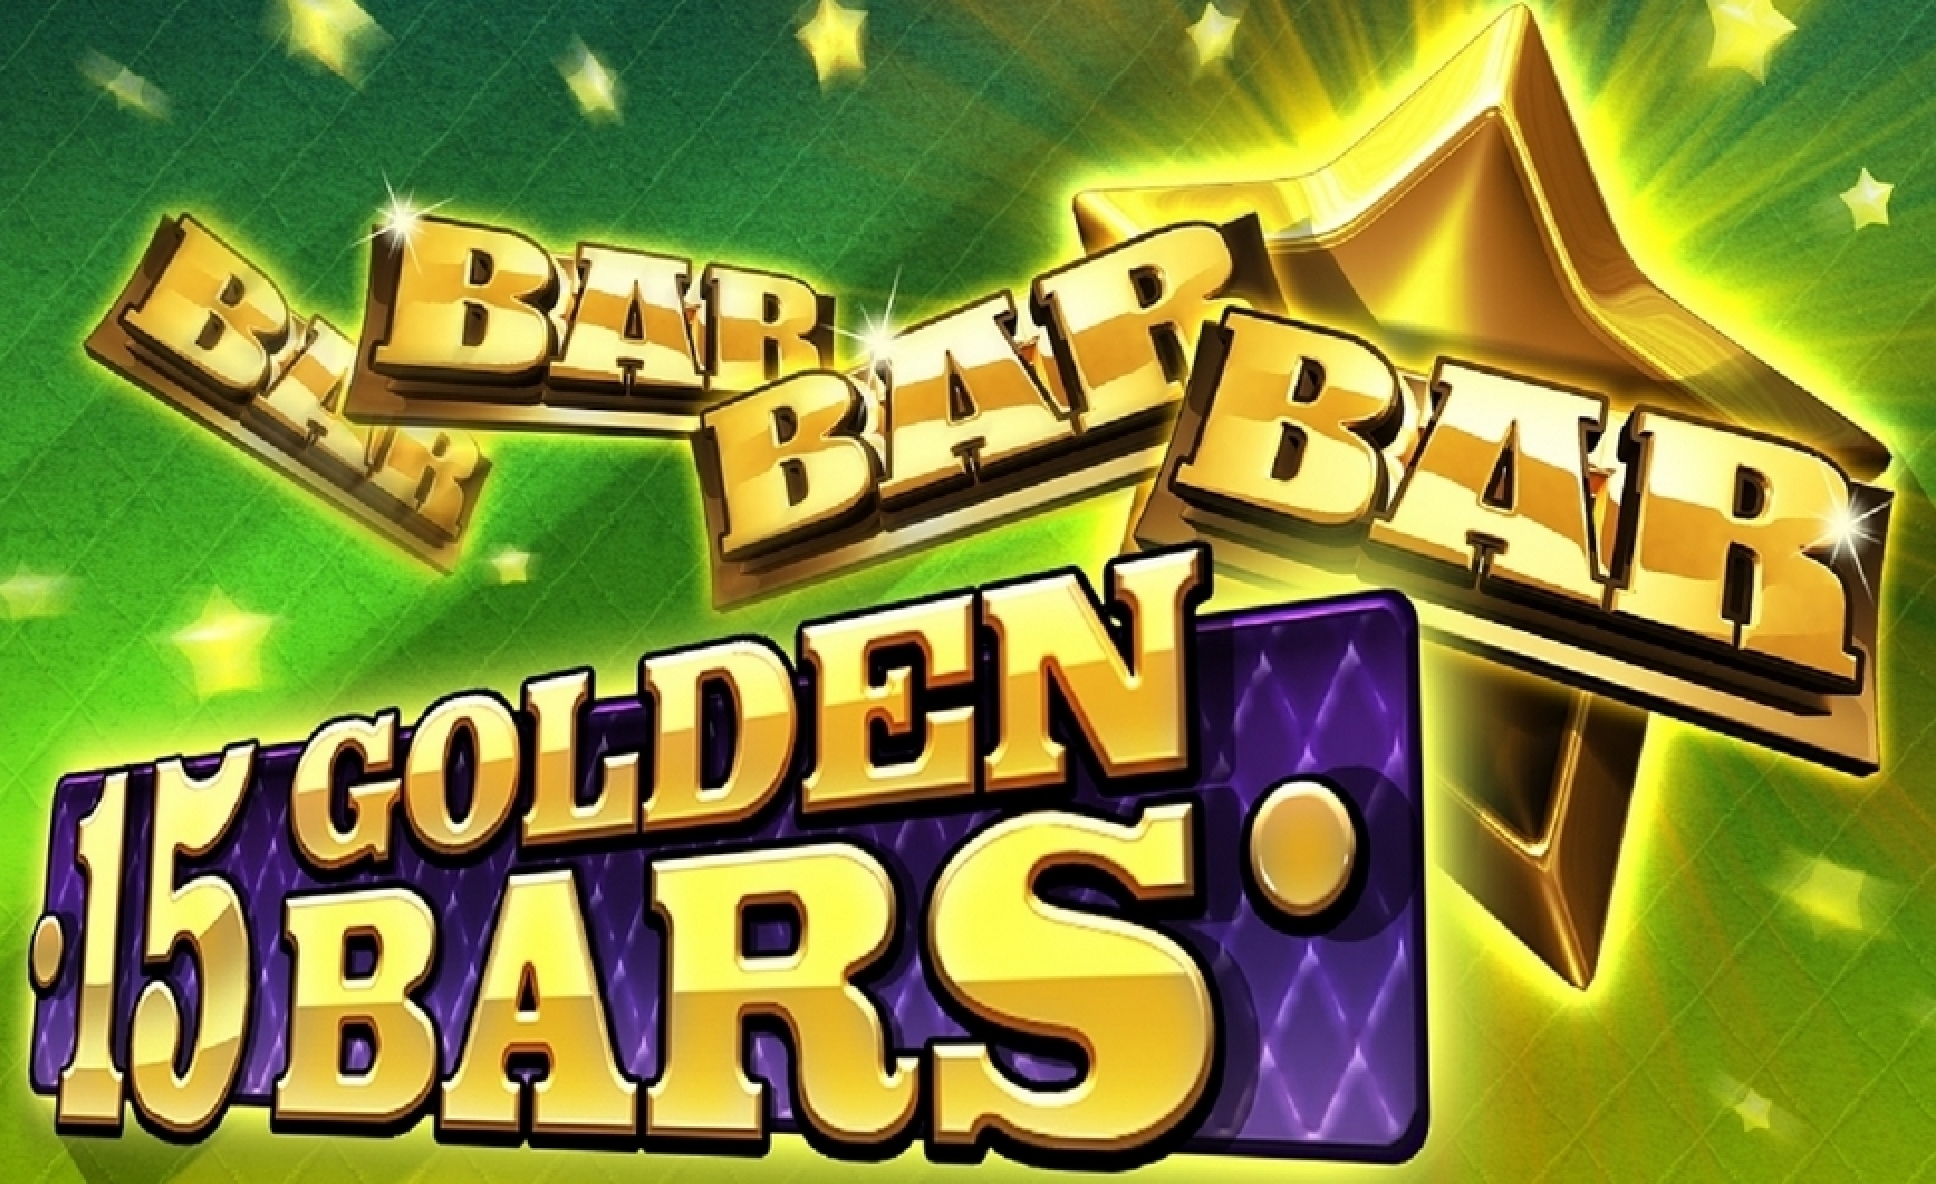 The 15 Golden Bars Online Slot Demo Game by FUGA Gaming